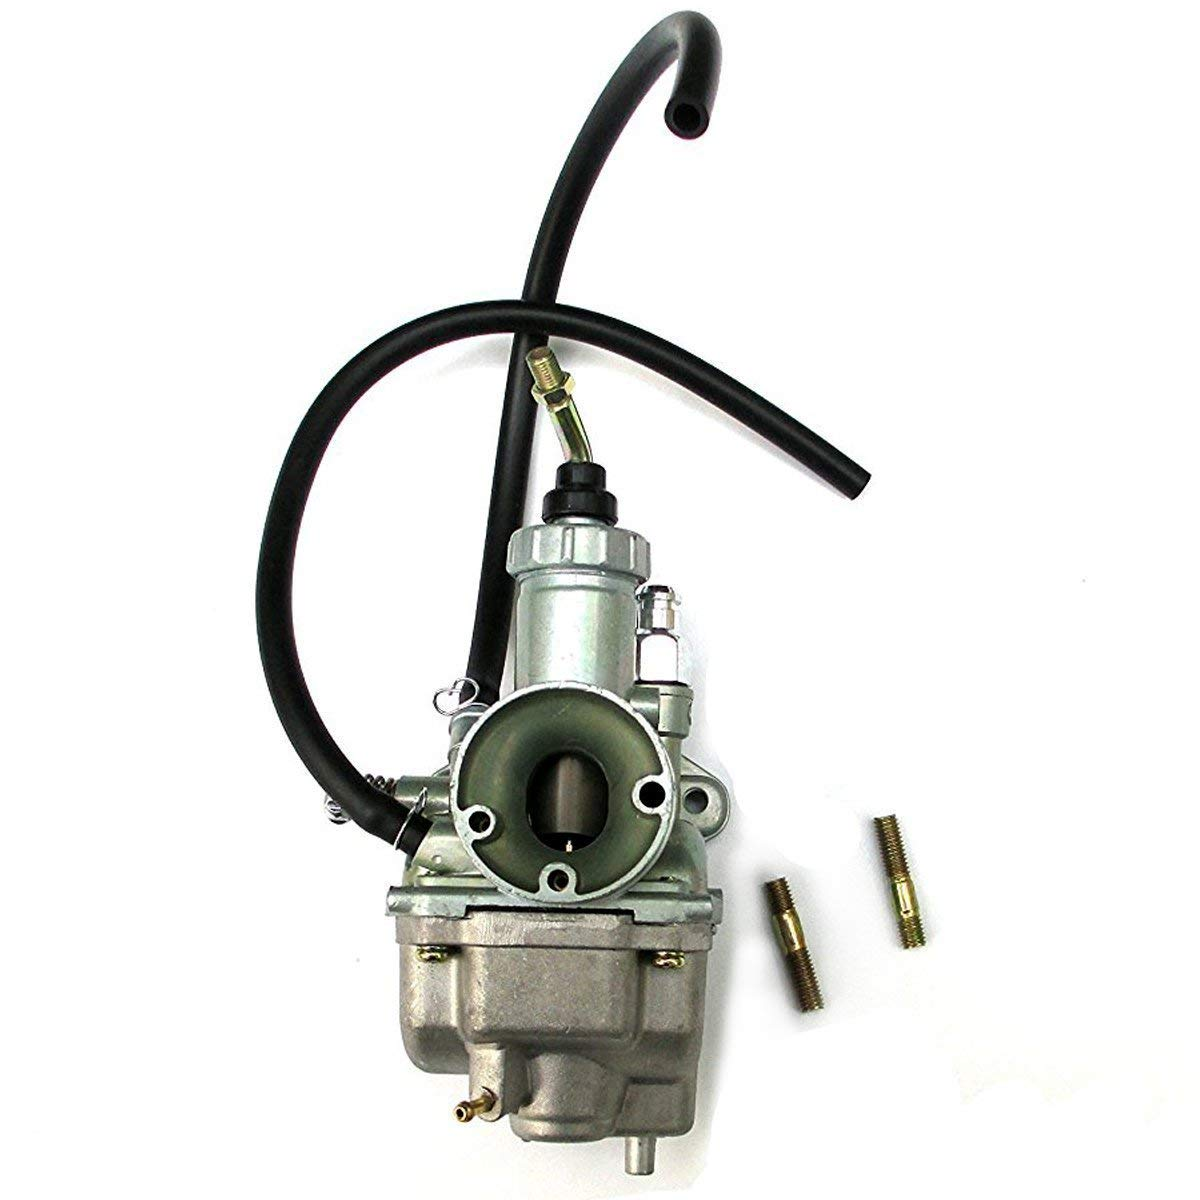 New Carburetor Fits for YAMAHA TIMBERWOLF YFB250 YFB 250 Carb 1992-2000 Carby 1996 98 by Amhousejoy RUIAN HAOCHENG VEHICLE PARTS